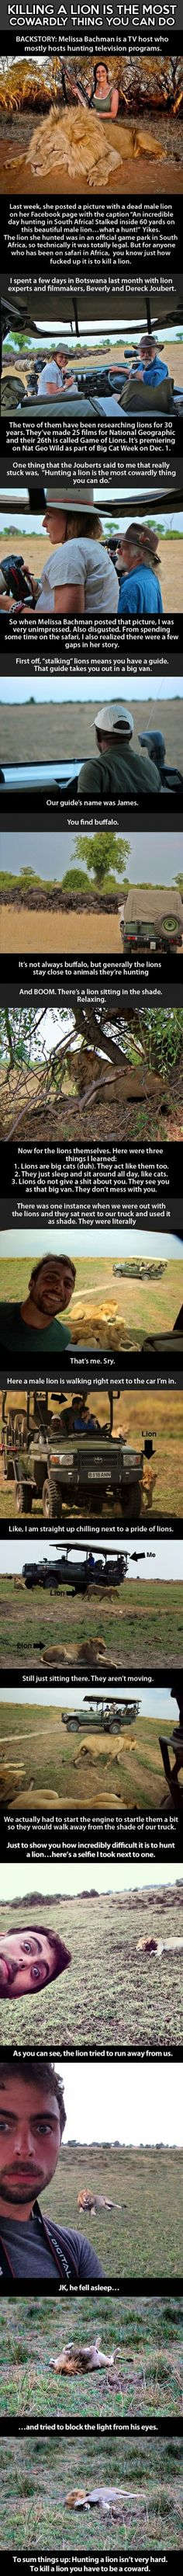 Well...good to know lions aren't as scary as you would think...I don't understand why you would hunt one :(